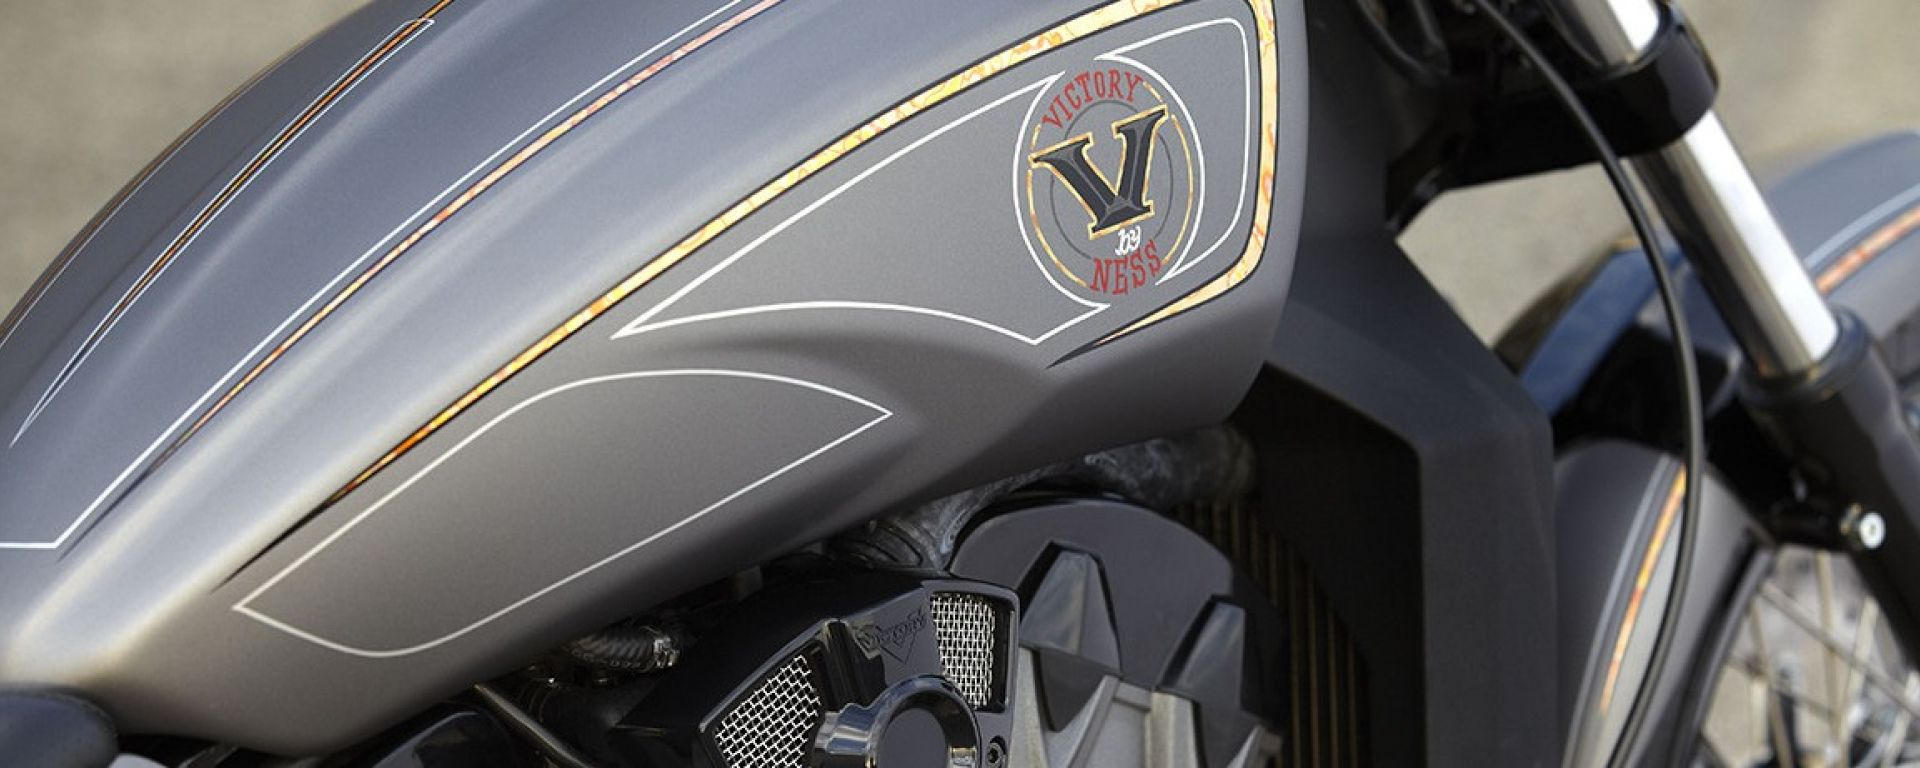 Victory Combustion e Ignition Concept